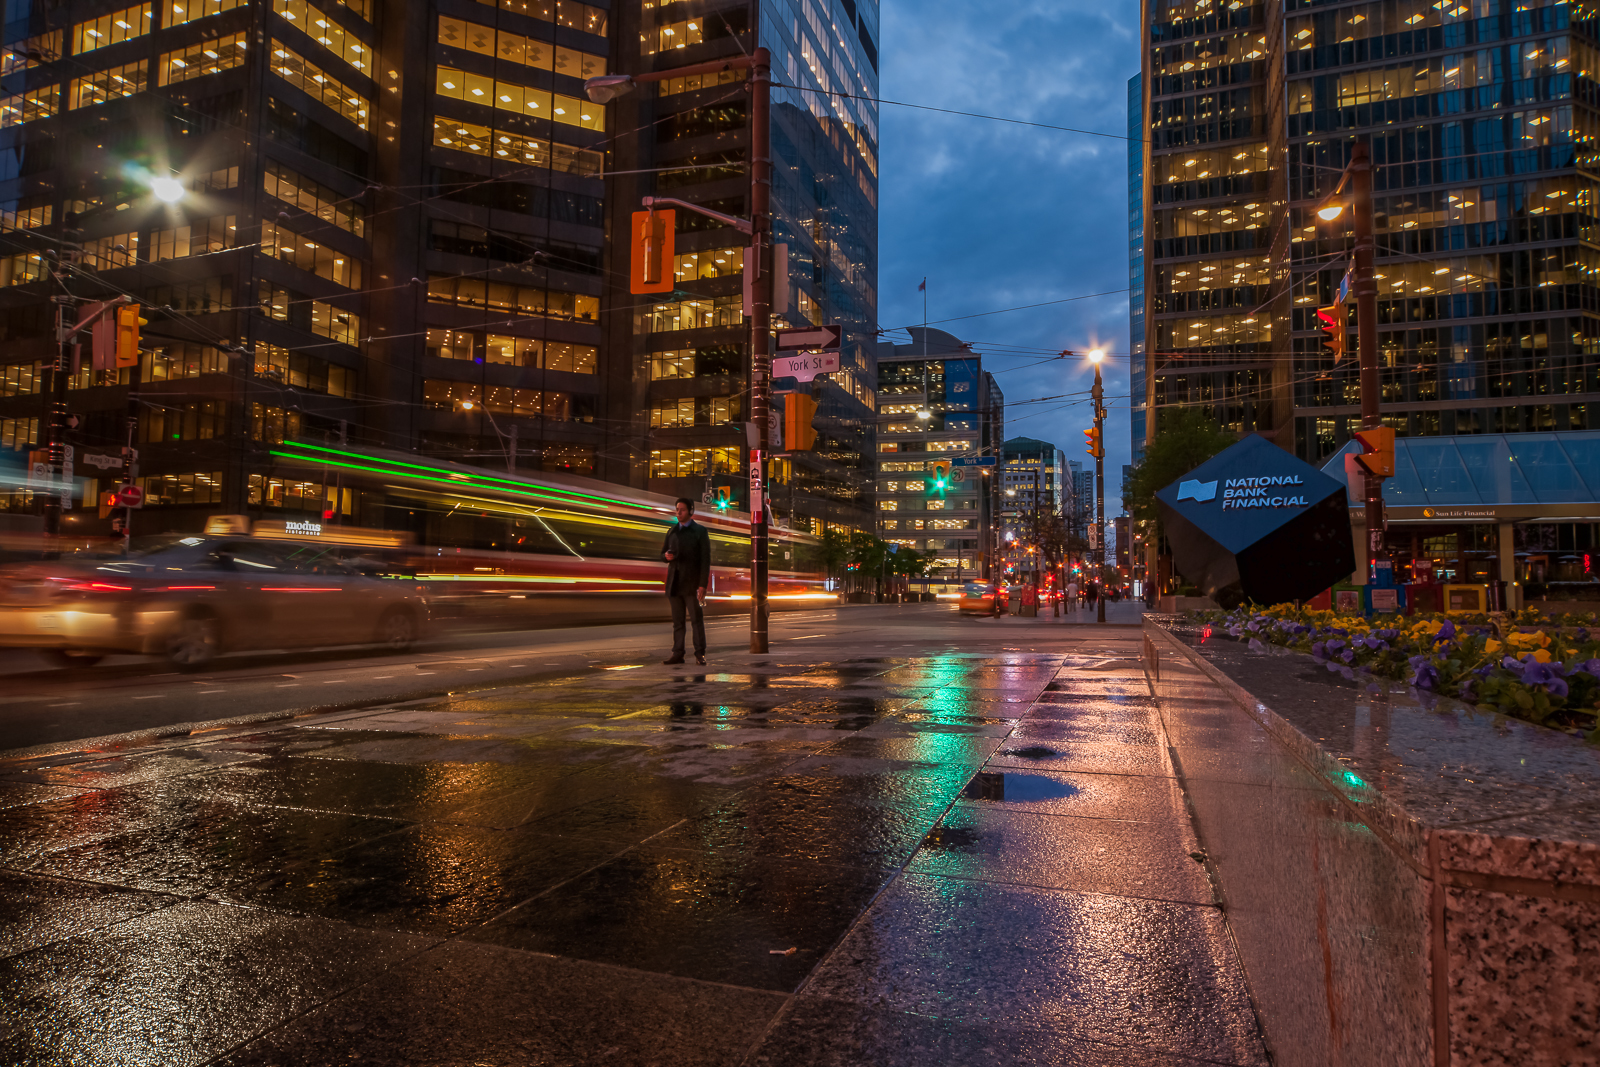 Toronto Photographer, Street, Urban Landscape, Night, City, Motion, Blur